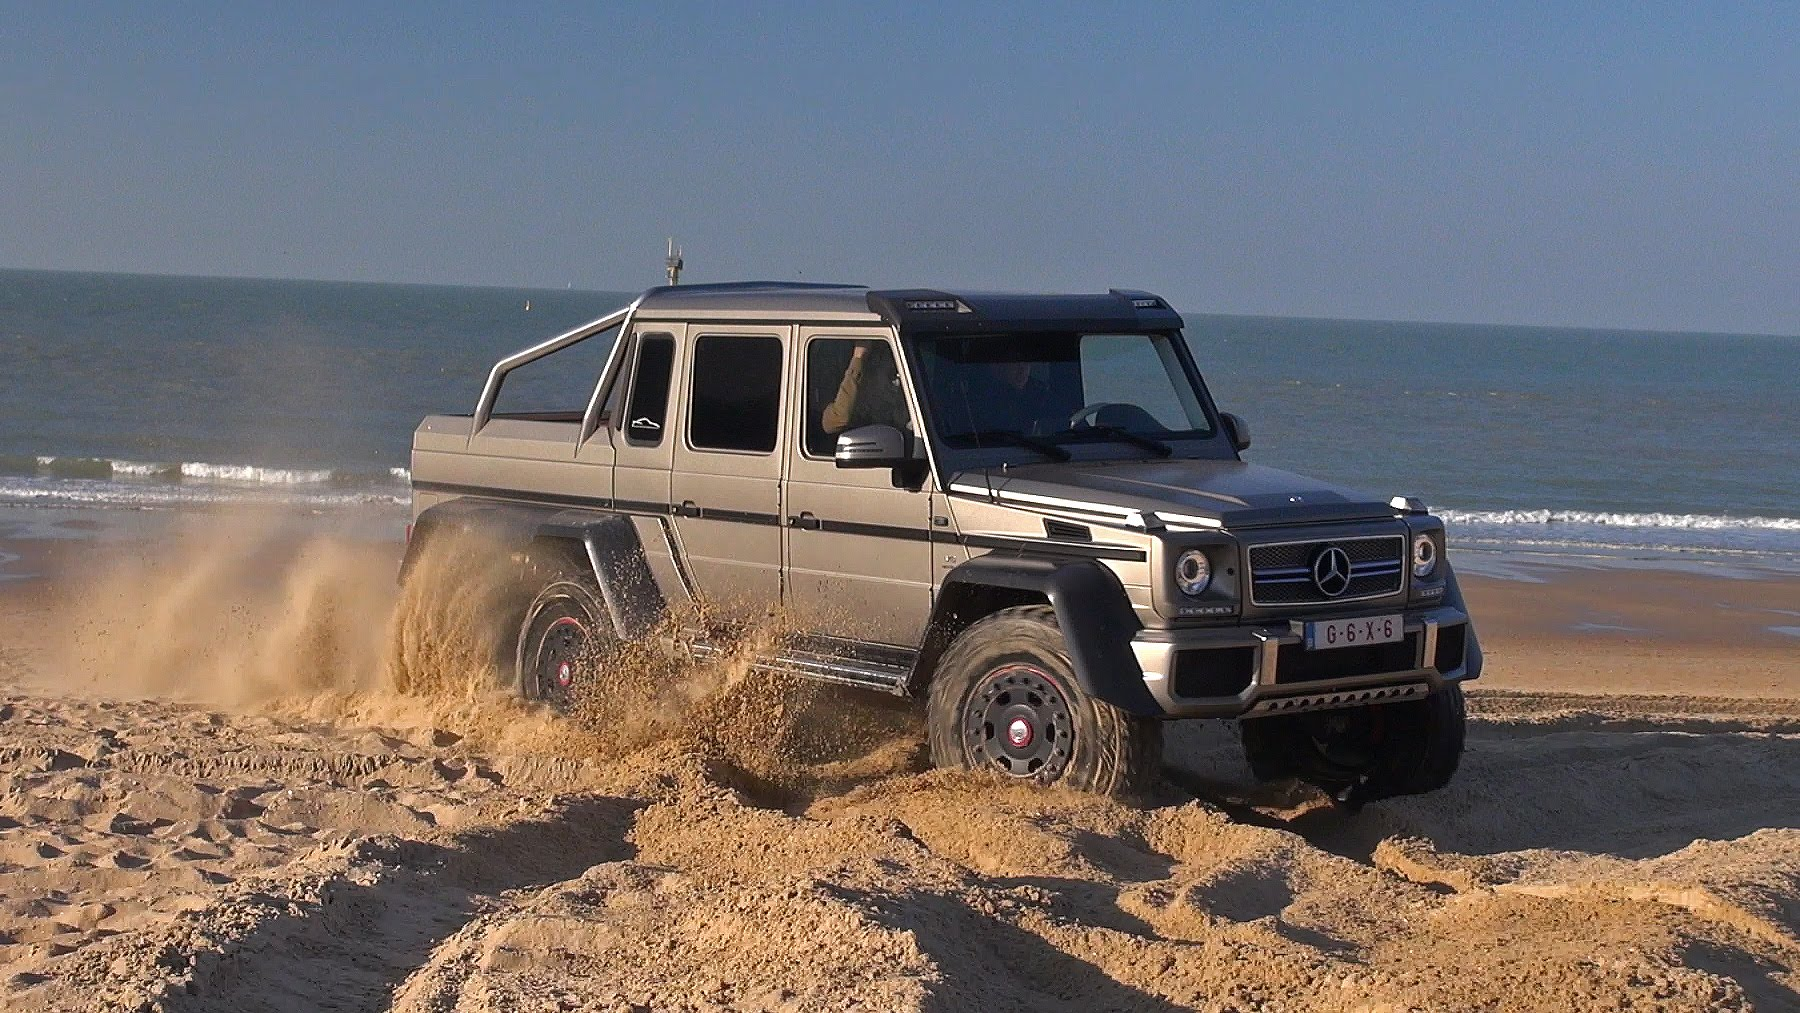 Mercedes benz g63 amg 6x6 in operation beach storm for Mercedes benz g63 6x6 amg